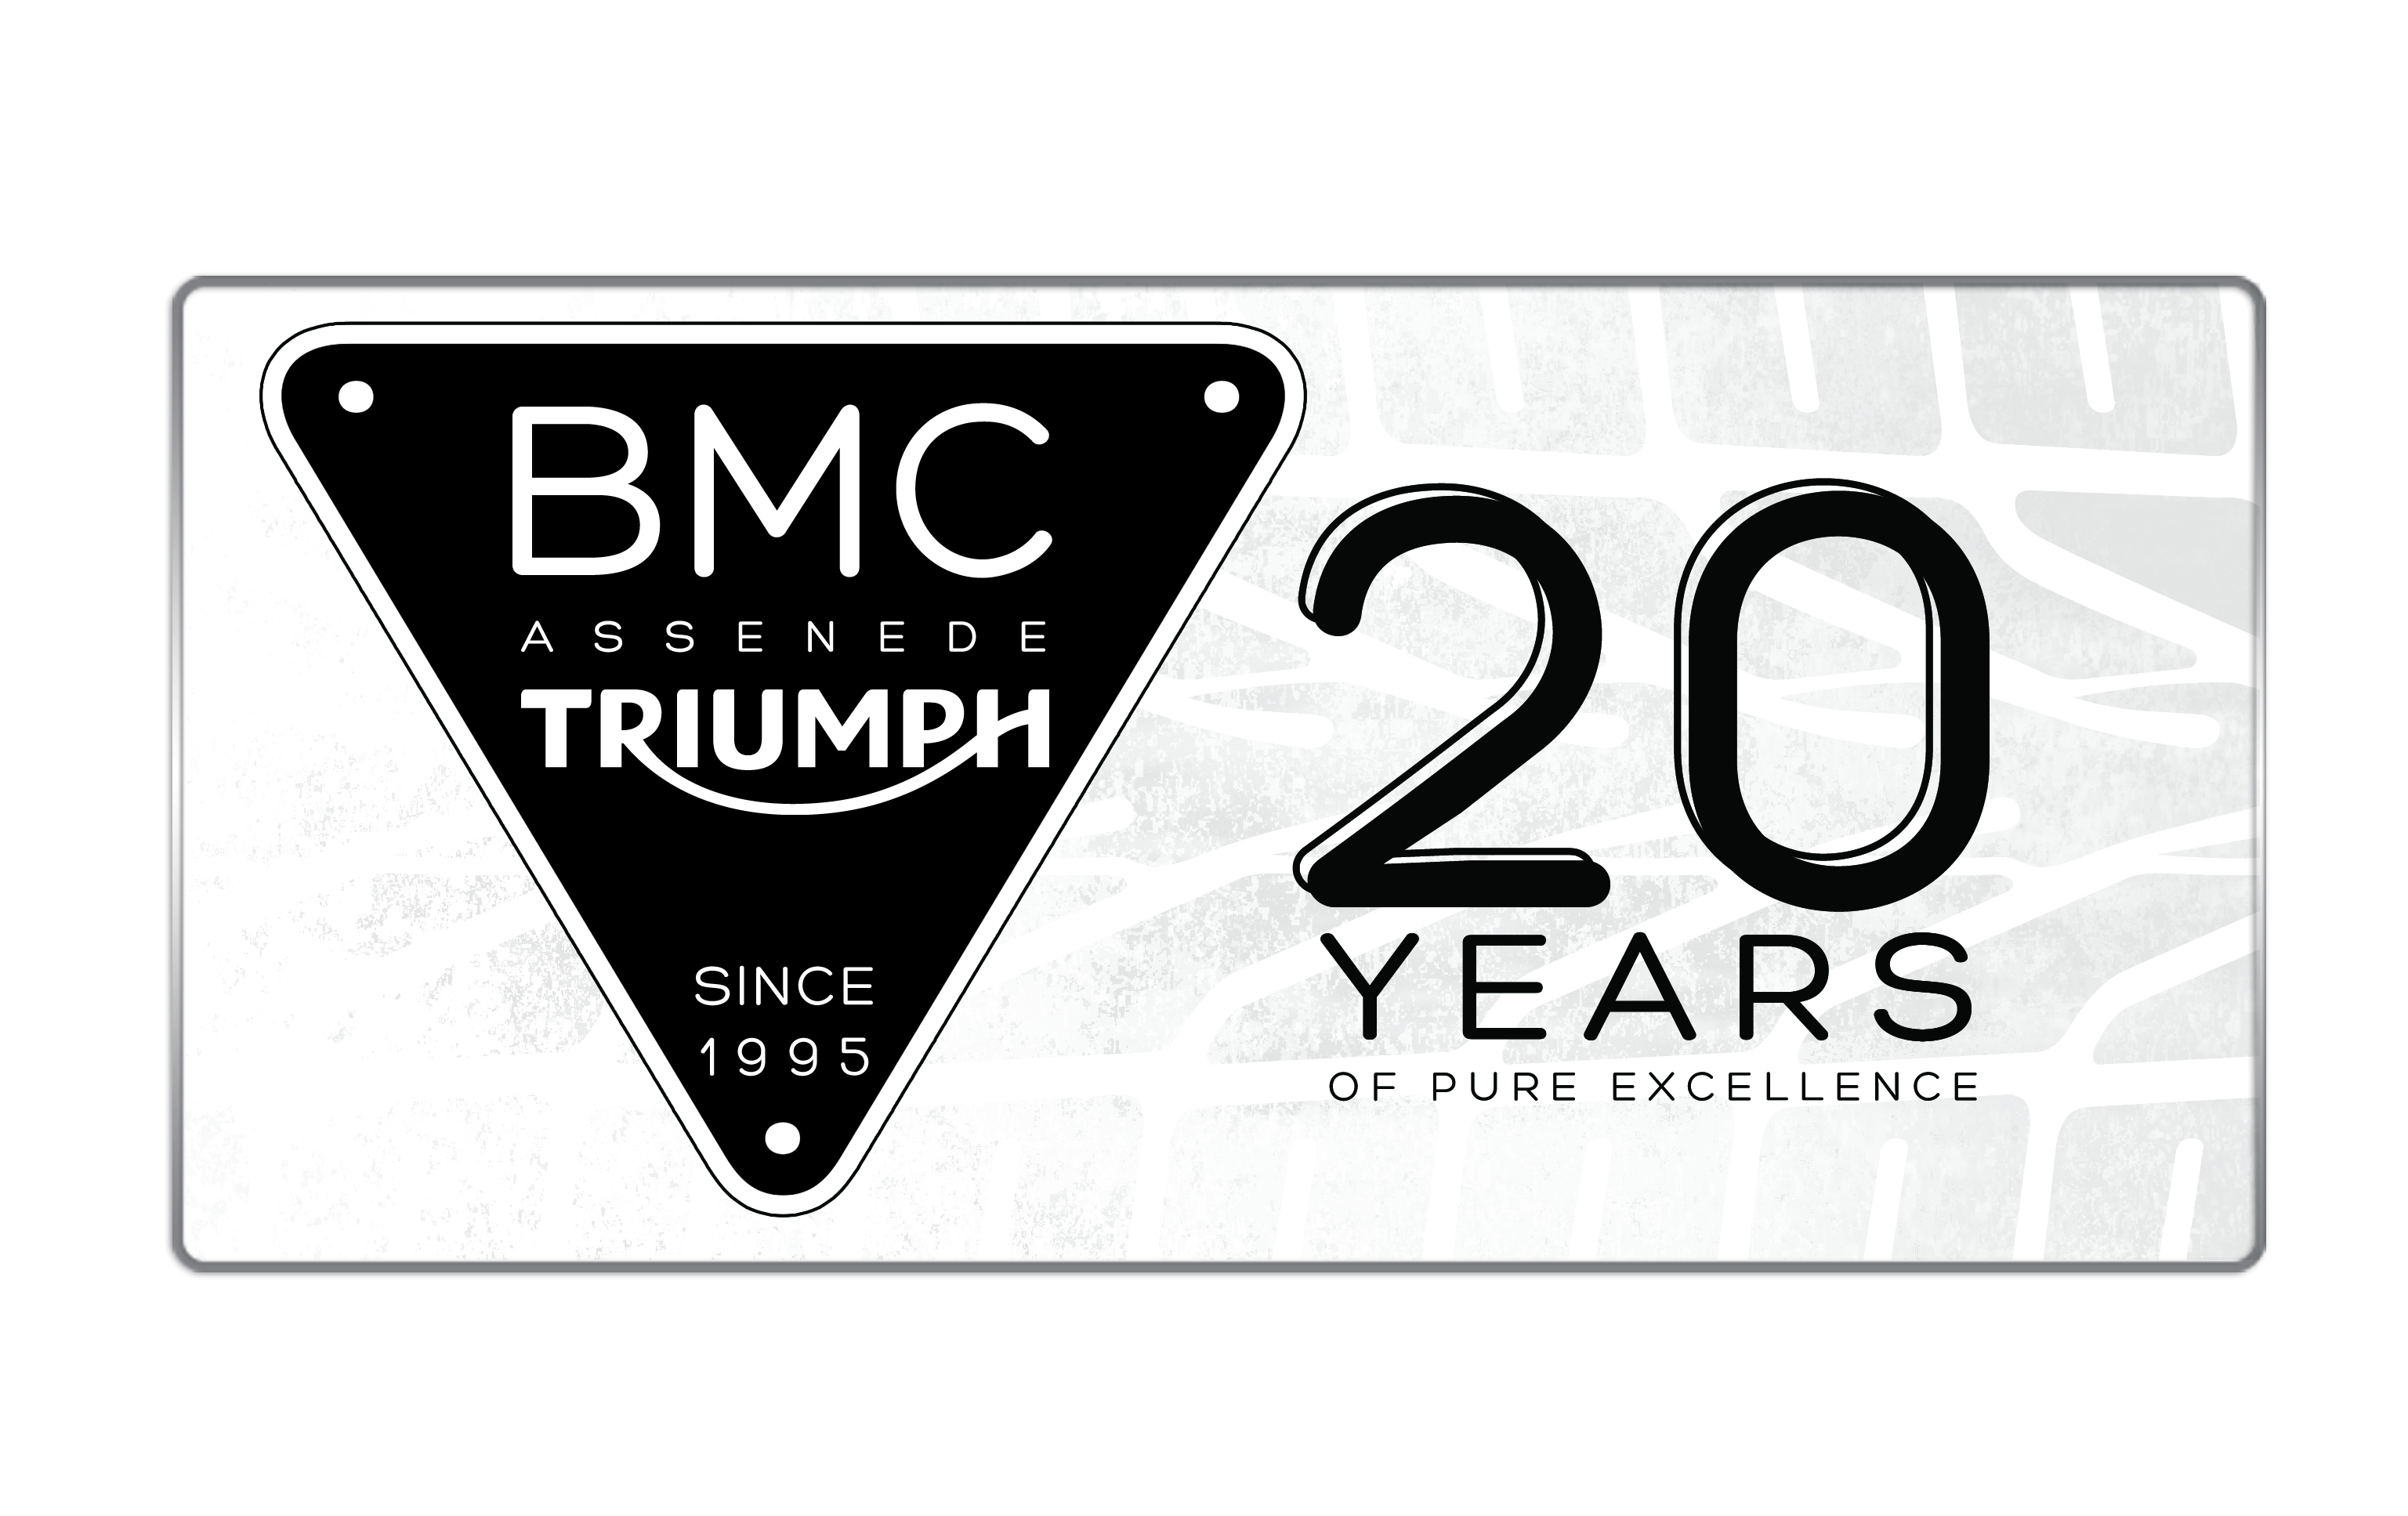 BMC Custom Motorcycles